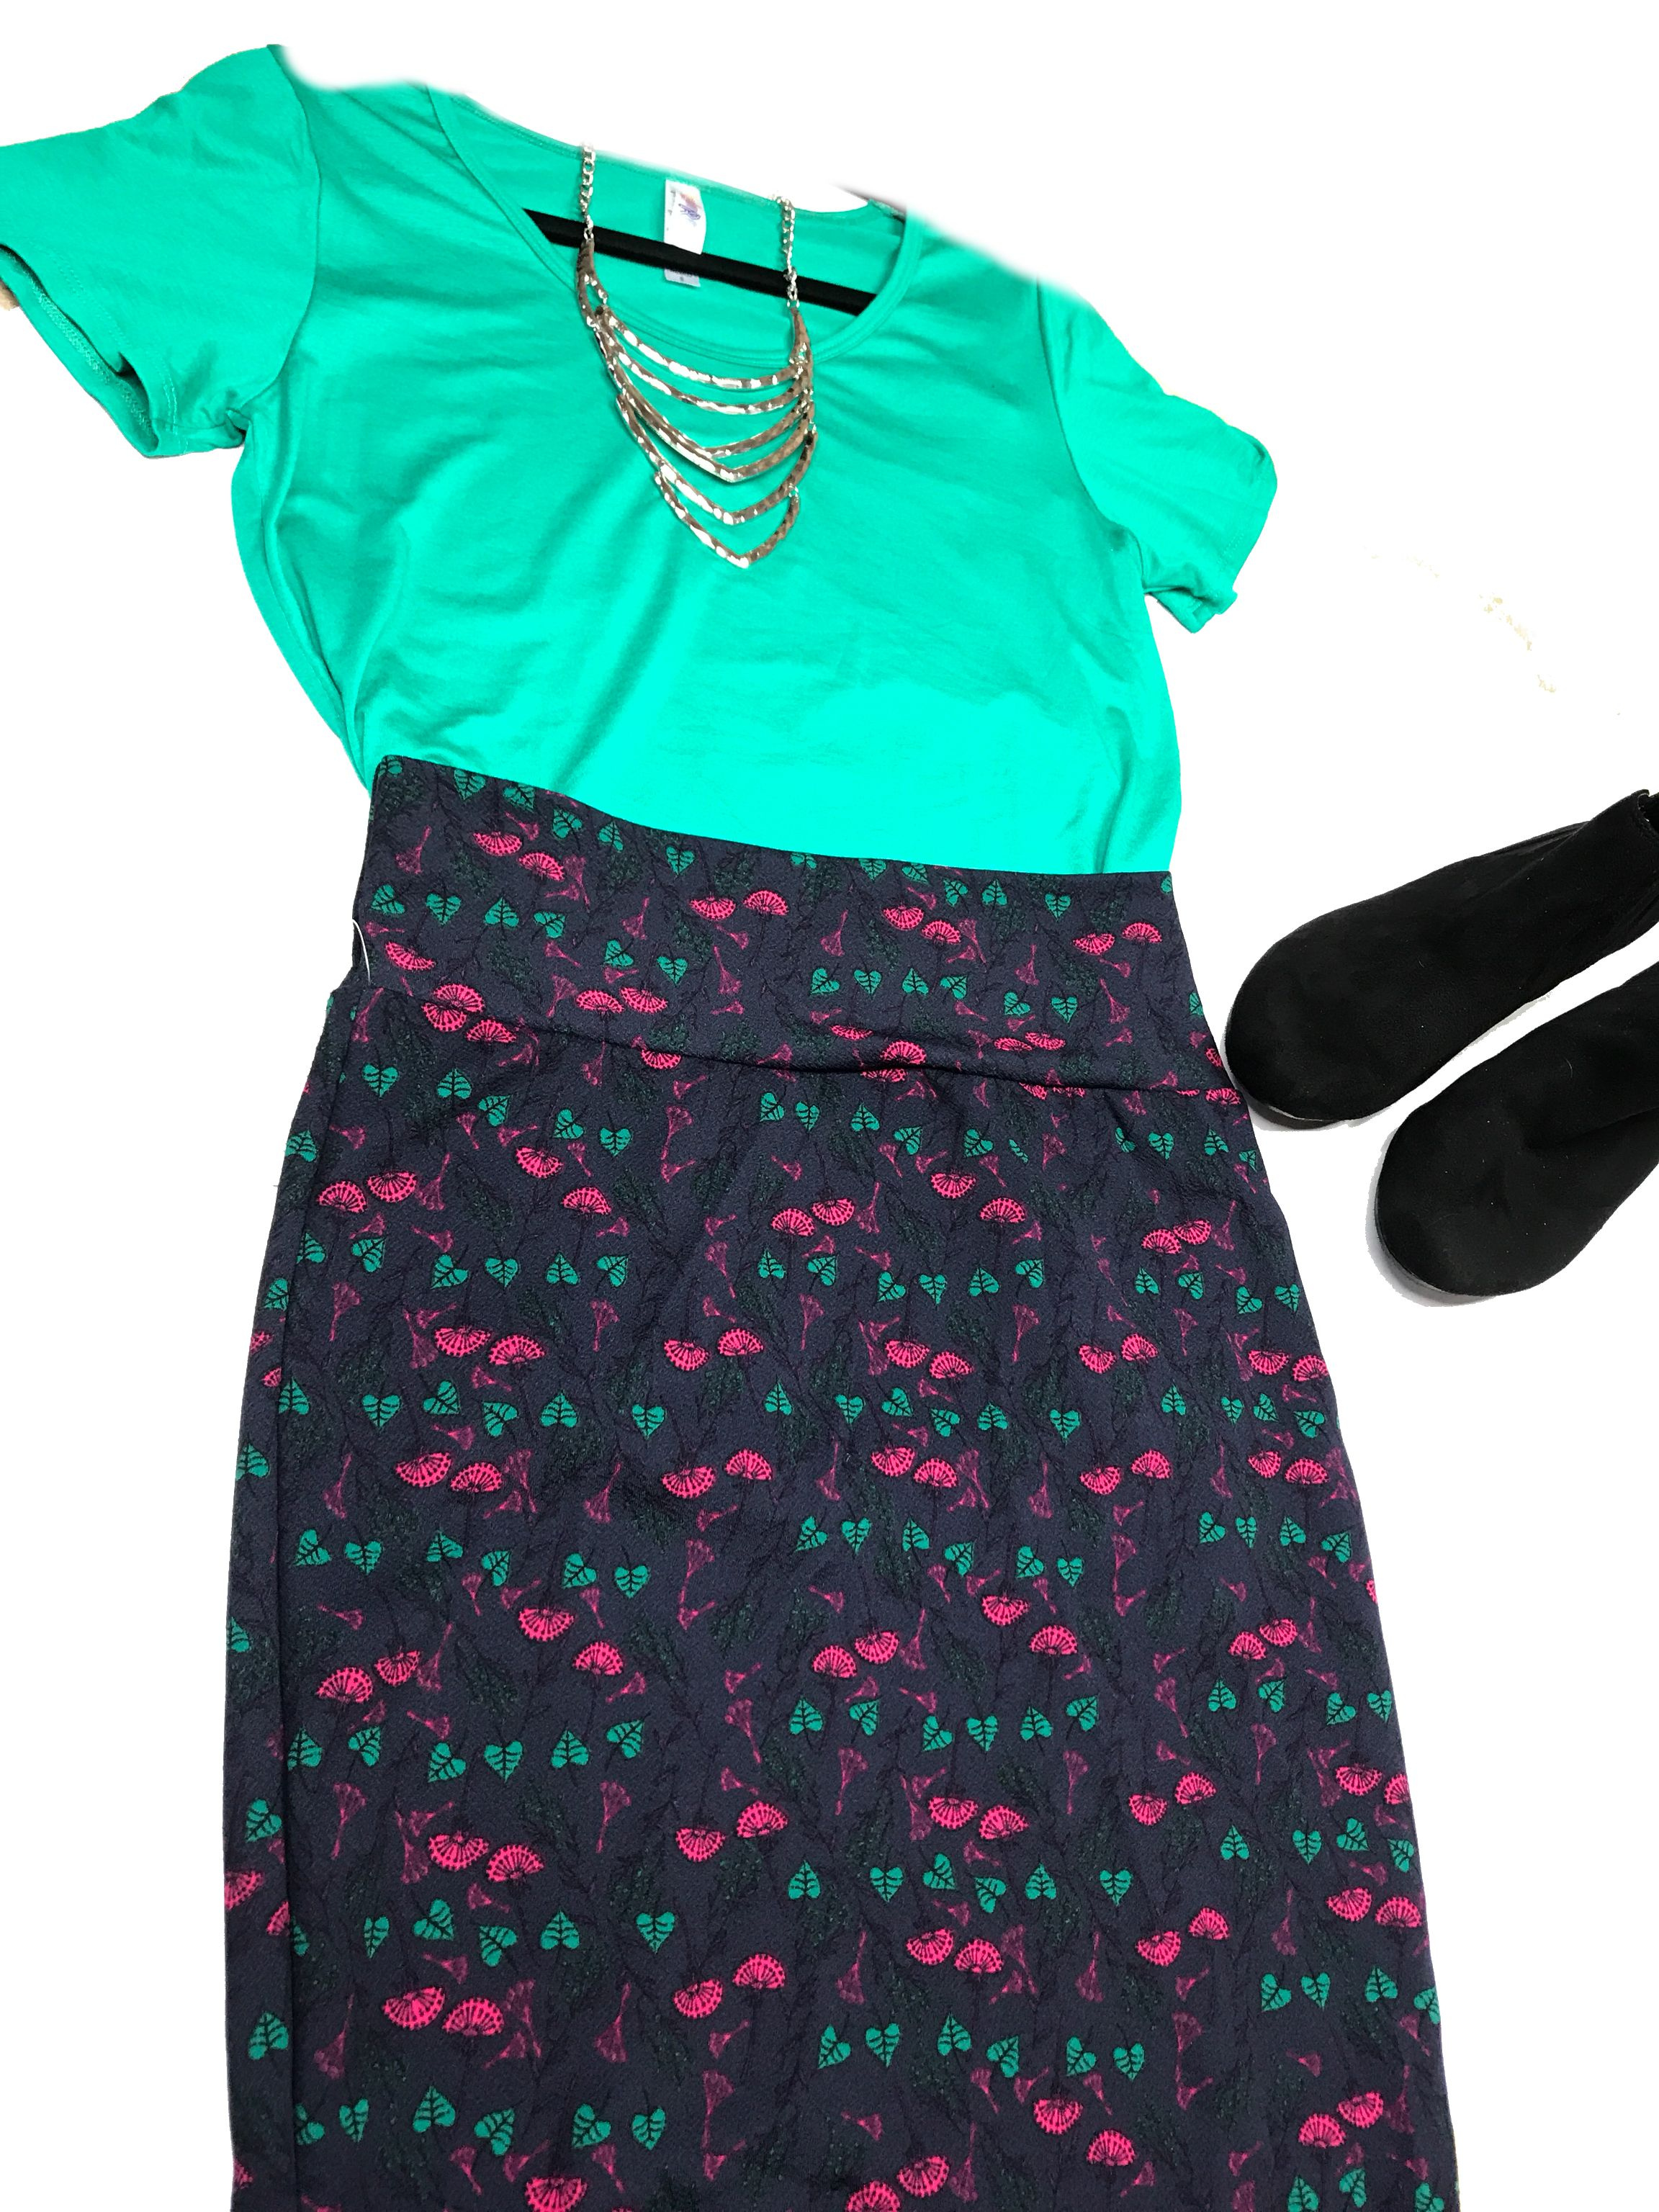 a17d7d39622 Perfect business casual outfit of a LuLaRoe classic tee and Cassie skirt